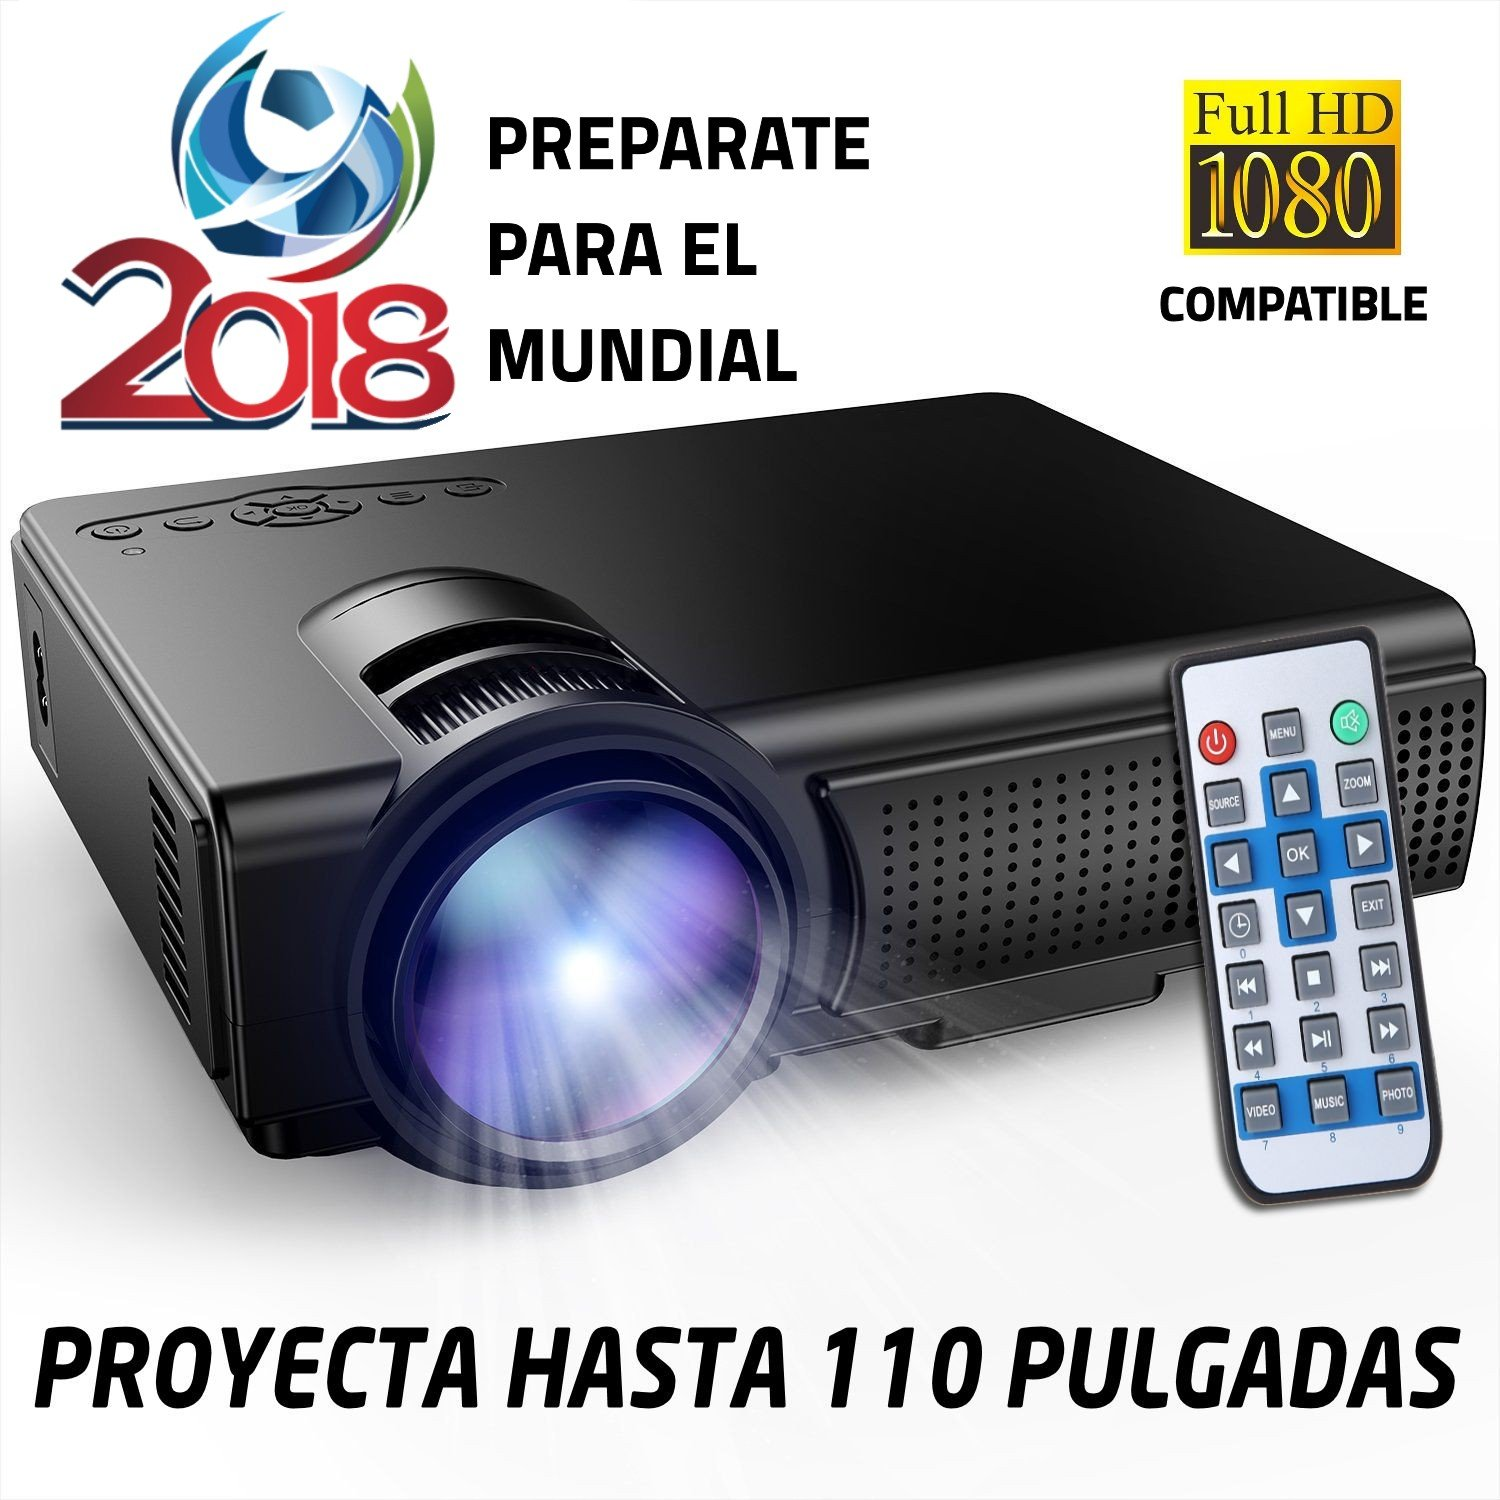 Proyector Full HD 1080P Compatible, Marca Unicview, Portátil Proyectores LED Projector LCD Cine en casa 1920x1080 HDMI VGA USB Multimedia, proyector ...